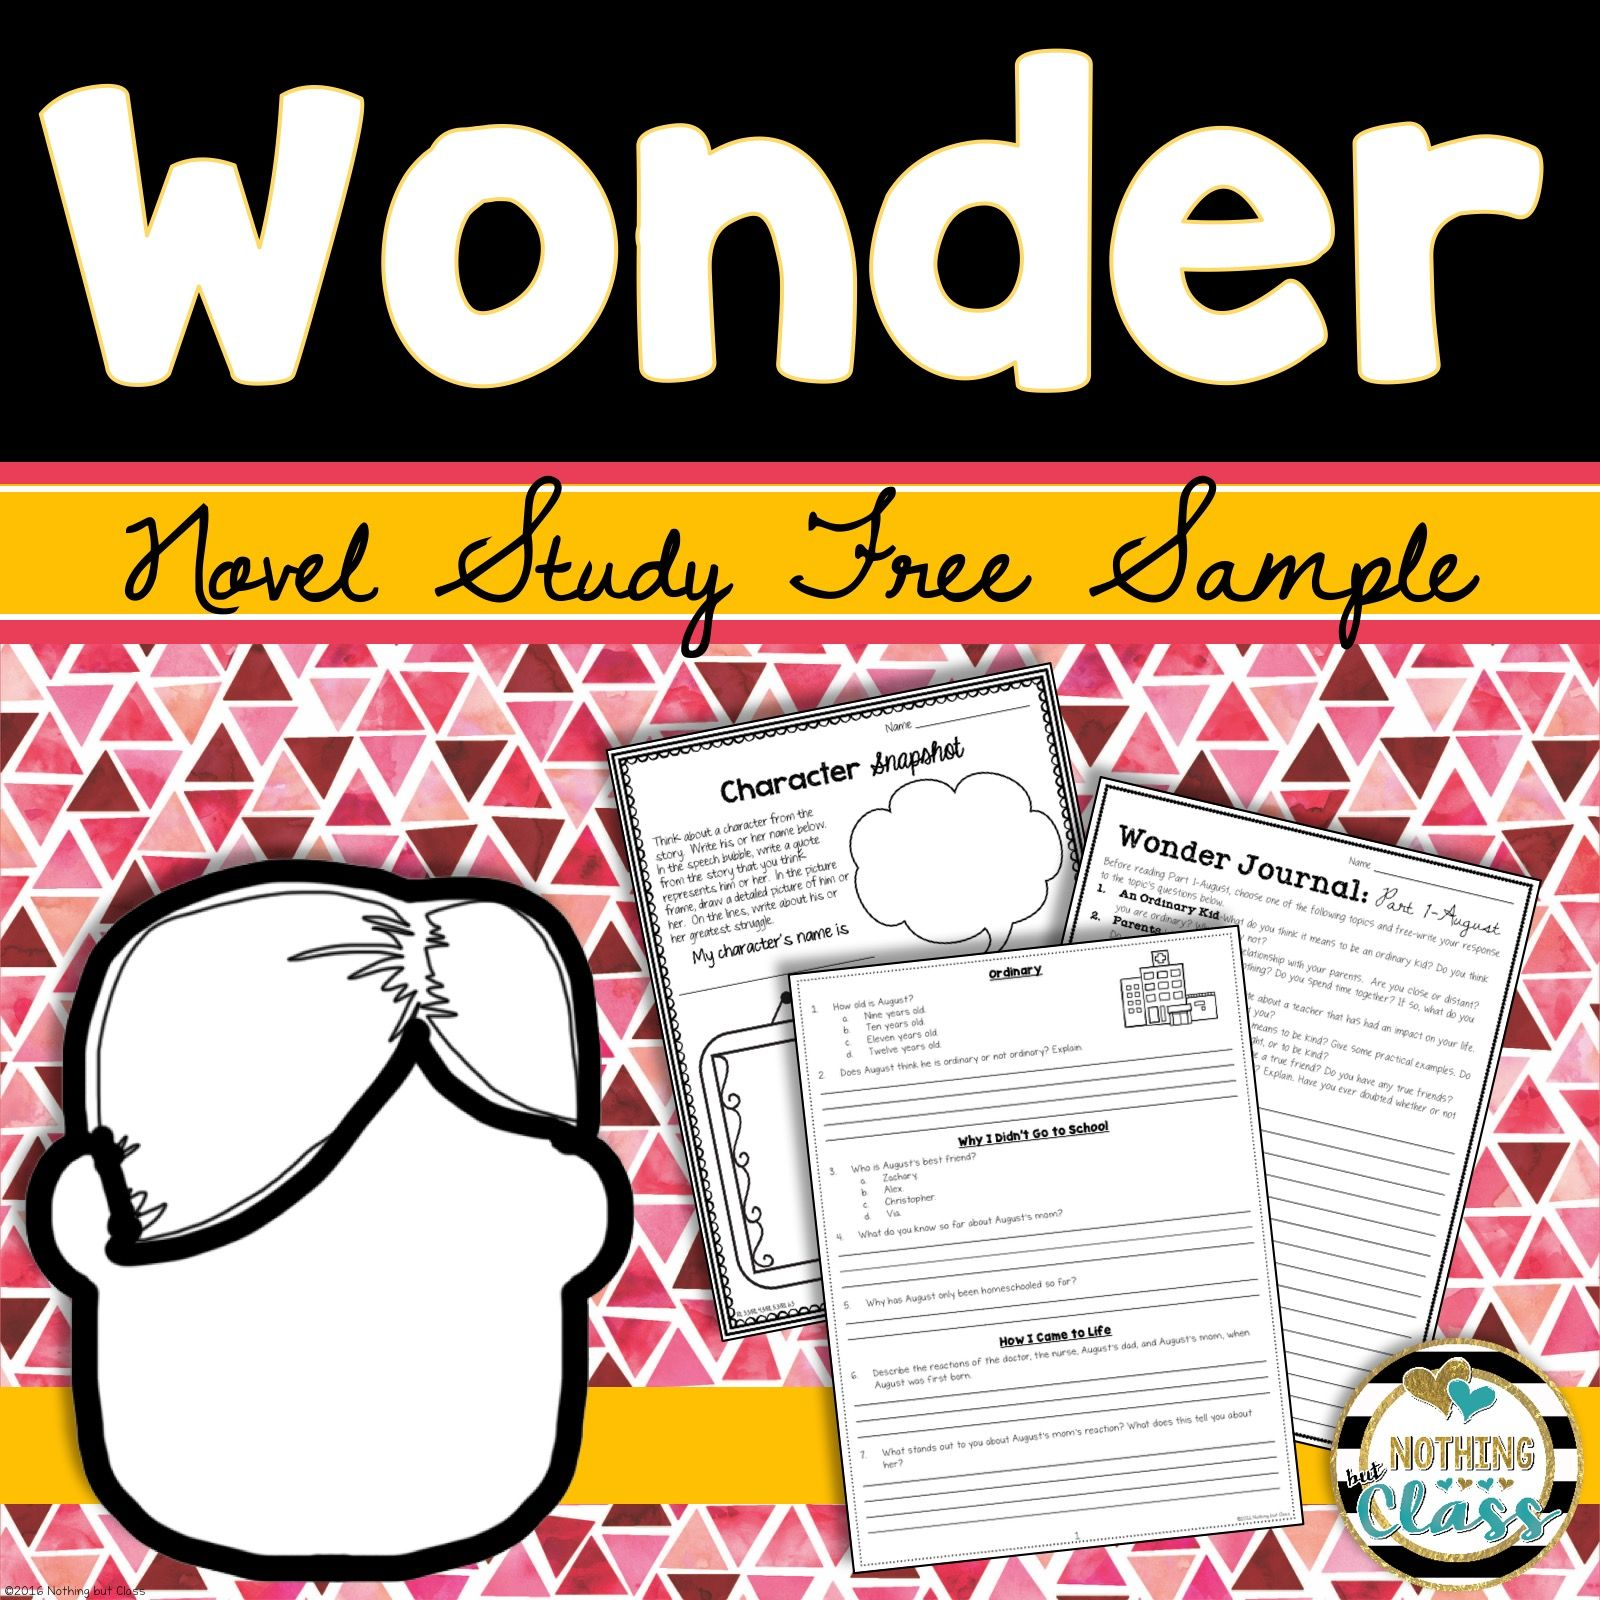 Wonder Novel Study Unit Free Sample Wonder Novel Novel Study